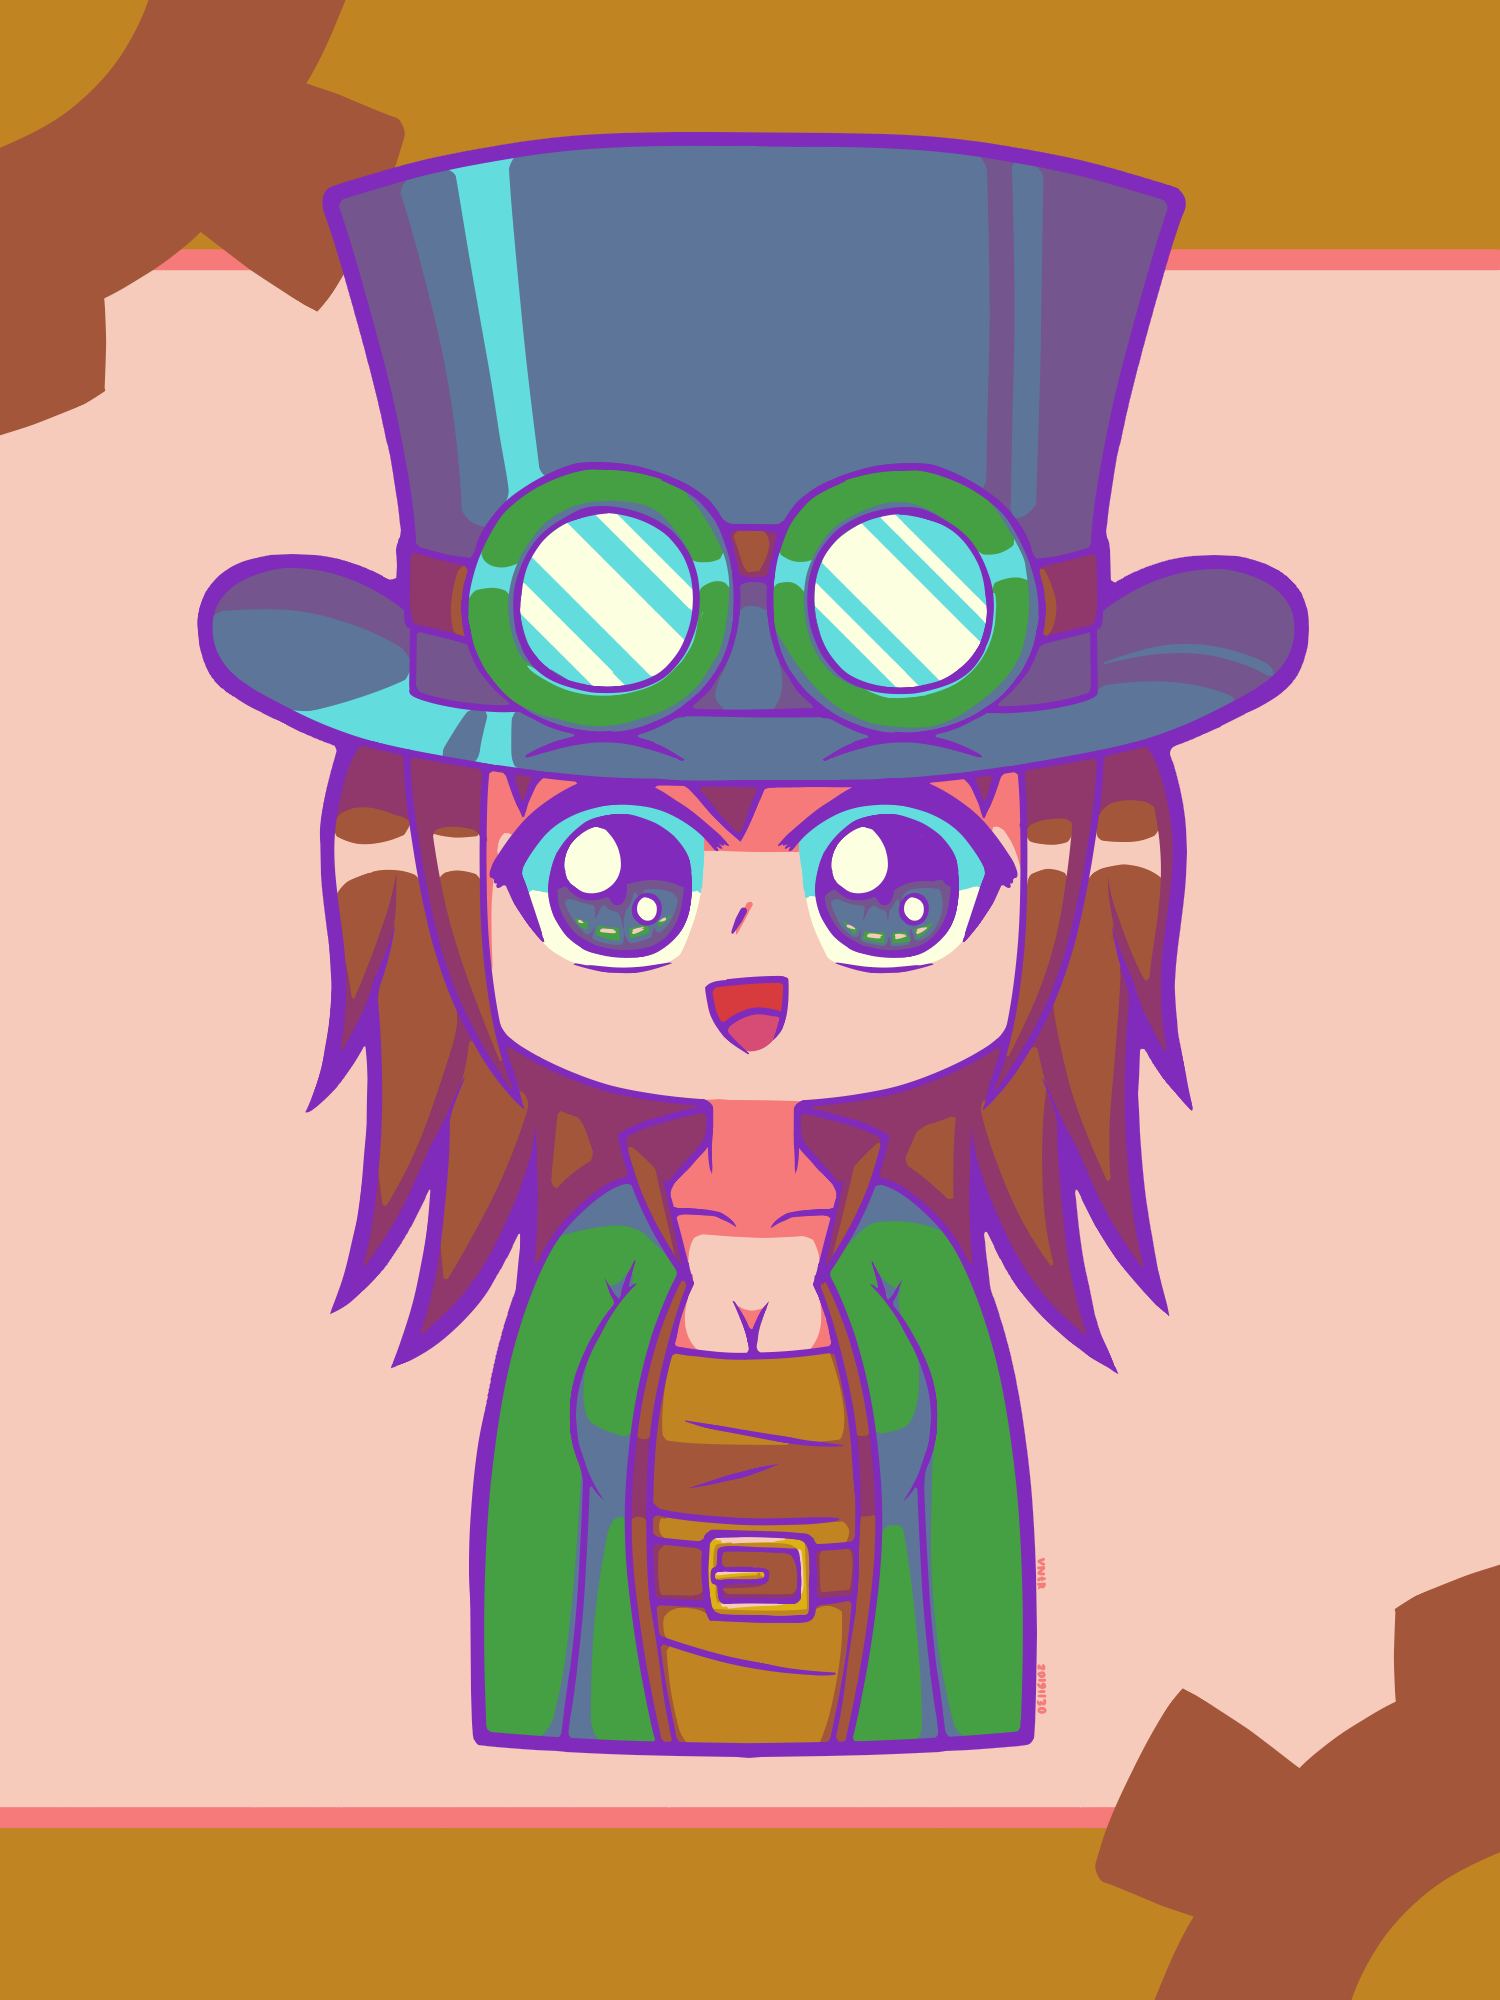 Chibi Terraria Steampunker - by NeithR - 20191130.png